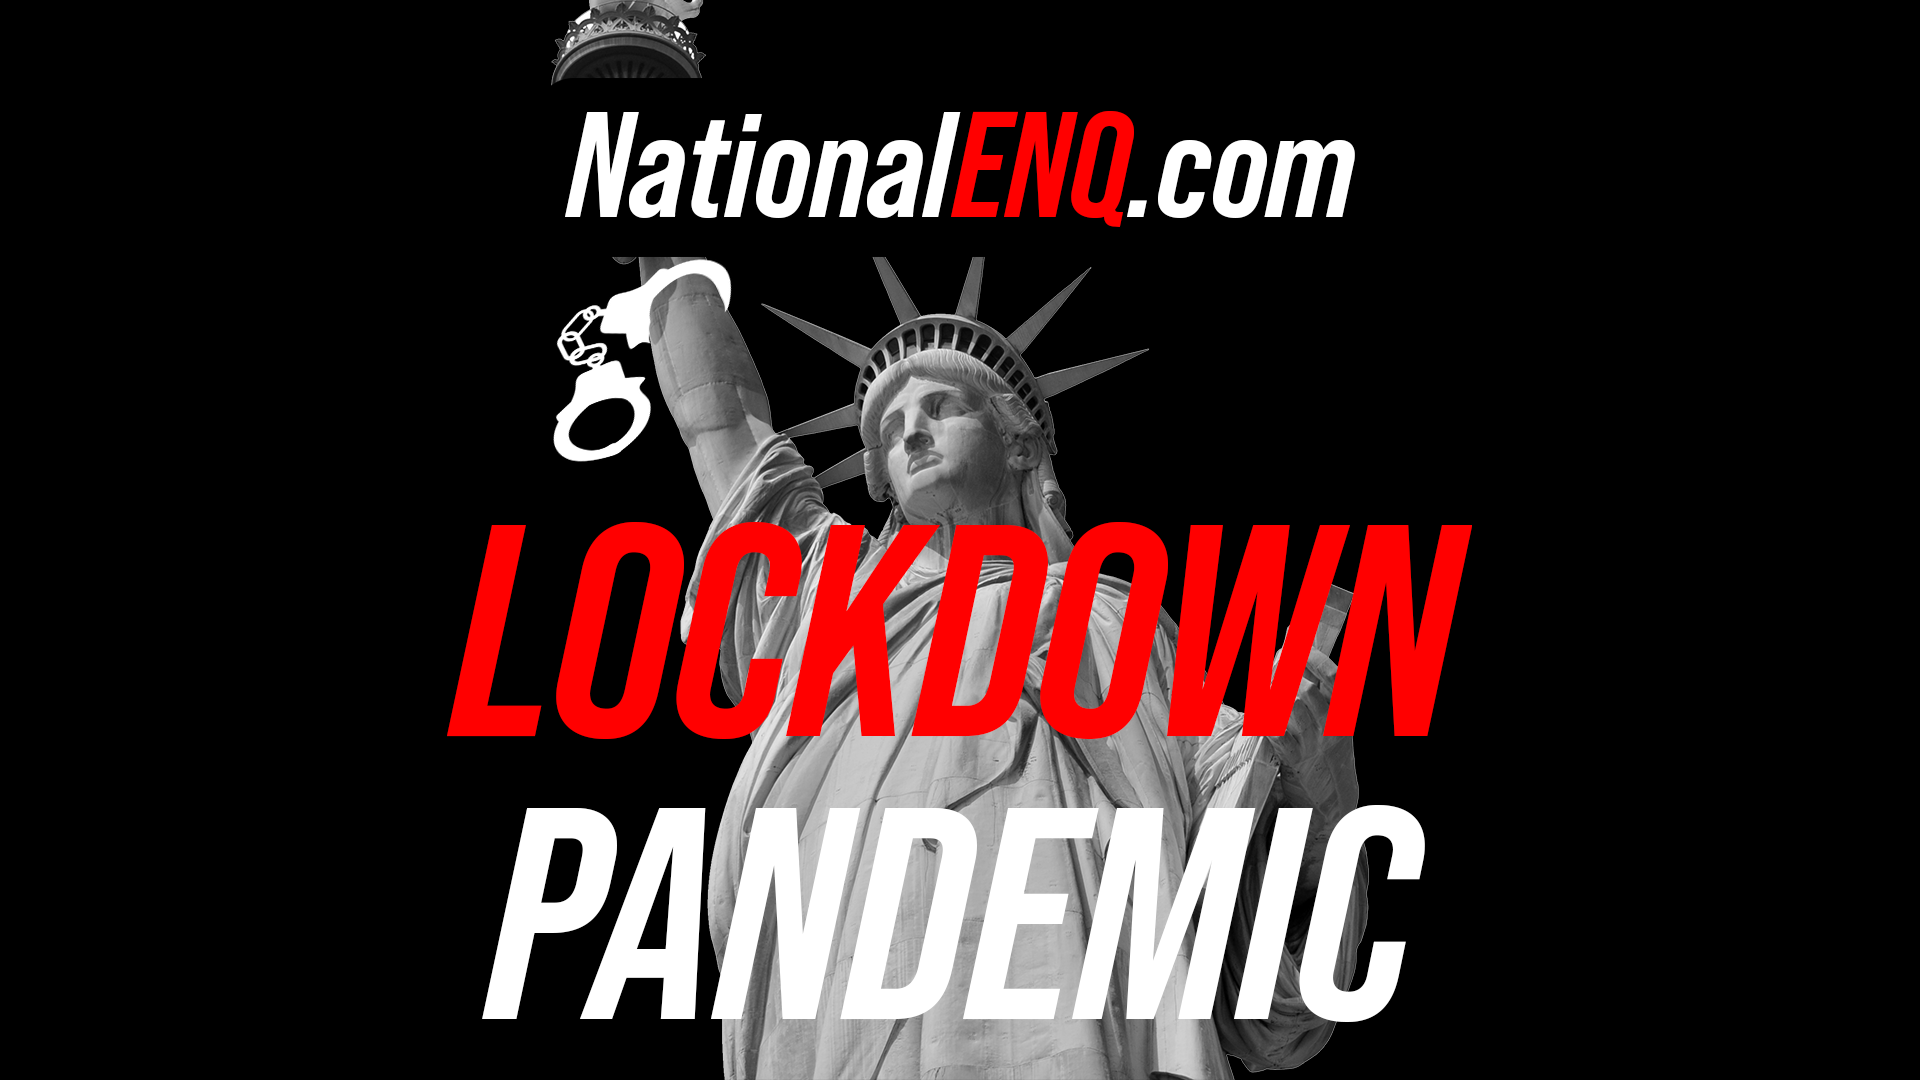 National ENQ News: Americans Want Freedom! From Coronavirus Pandemic to Lockdown Pandemic